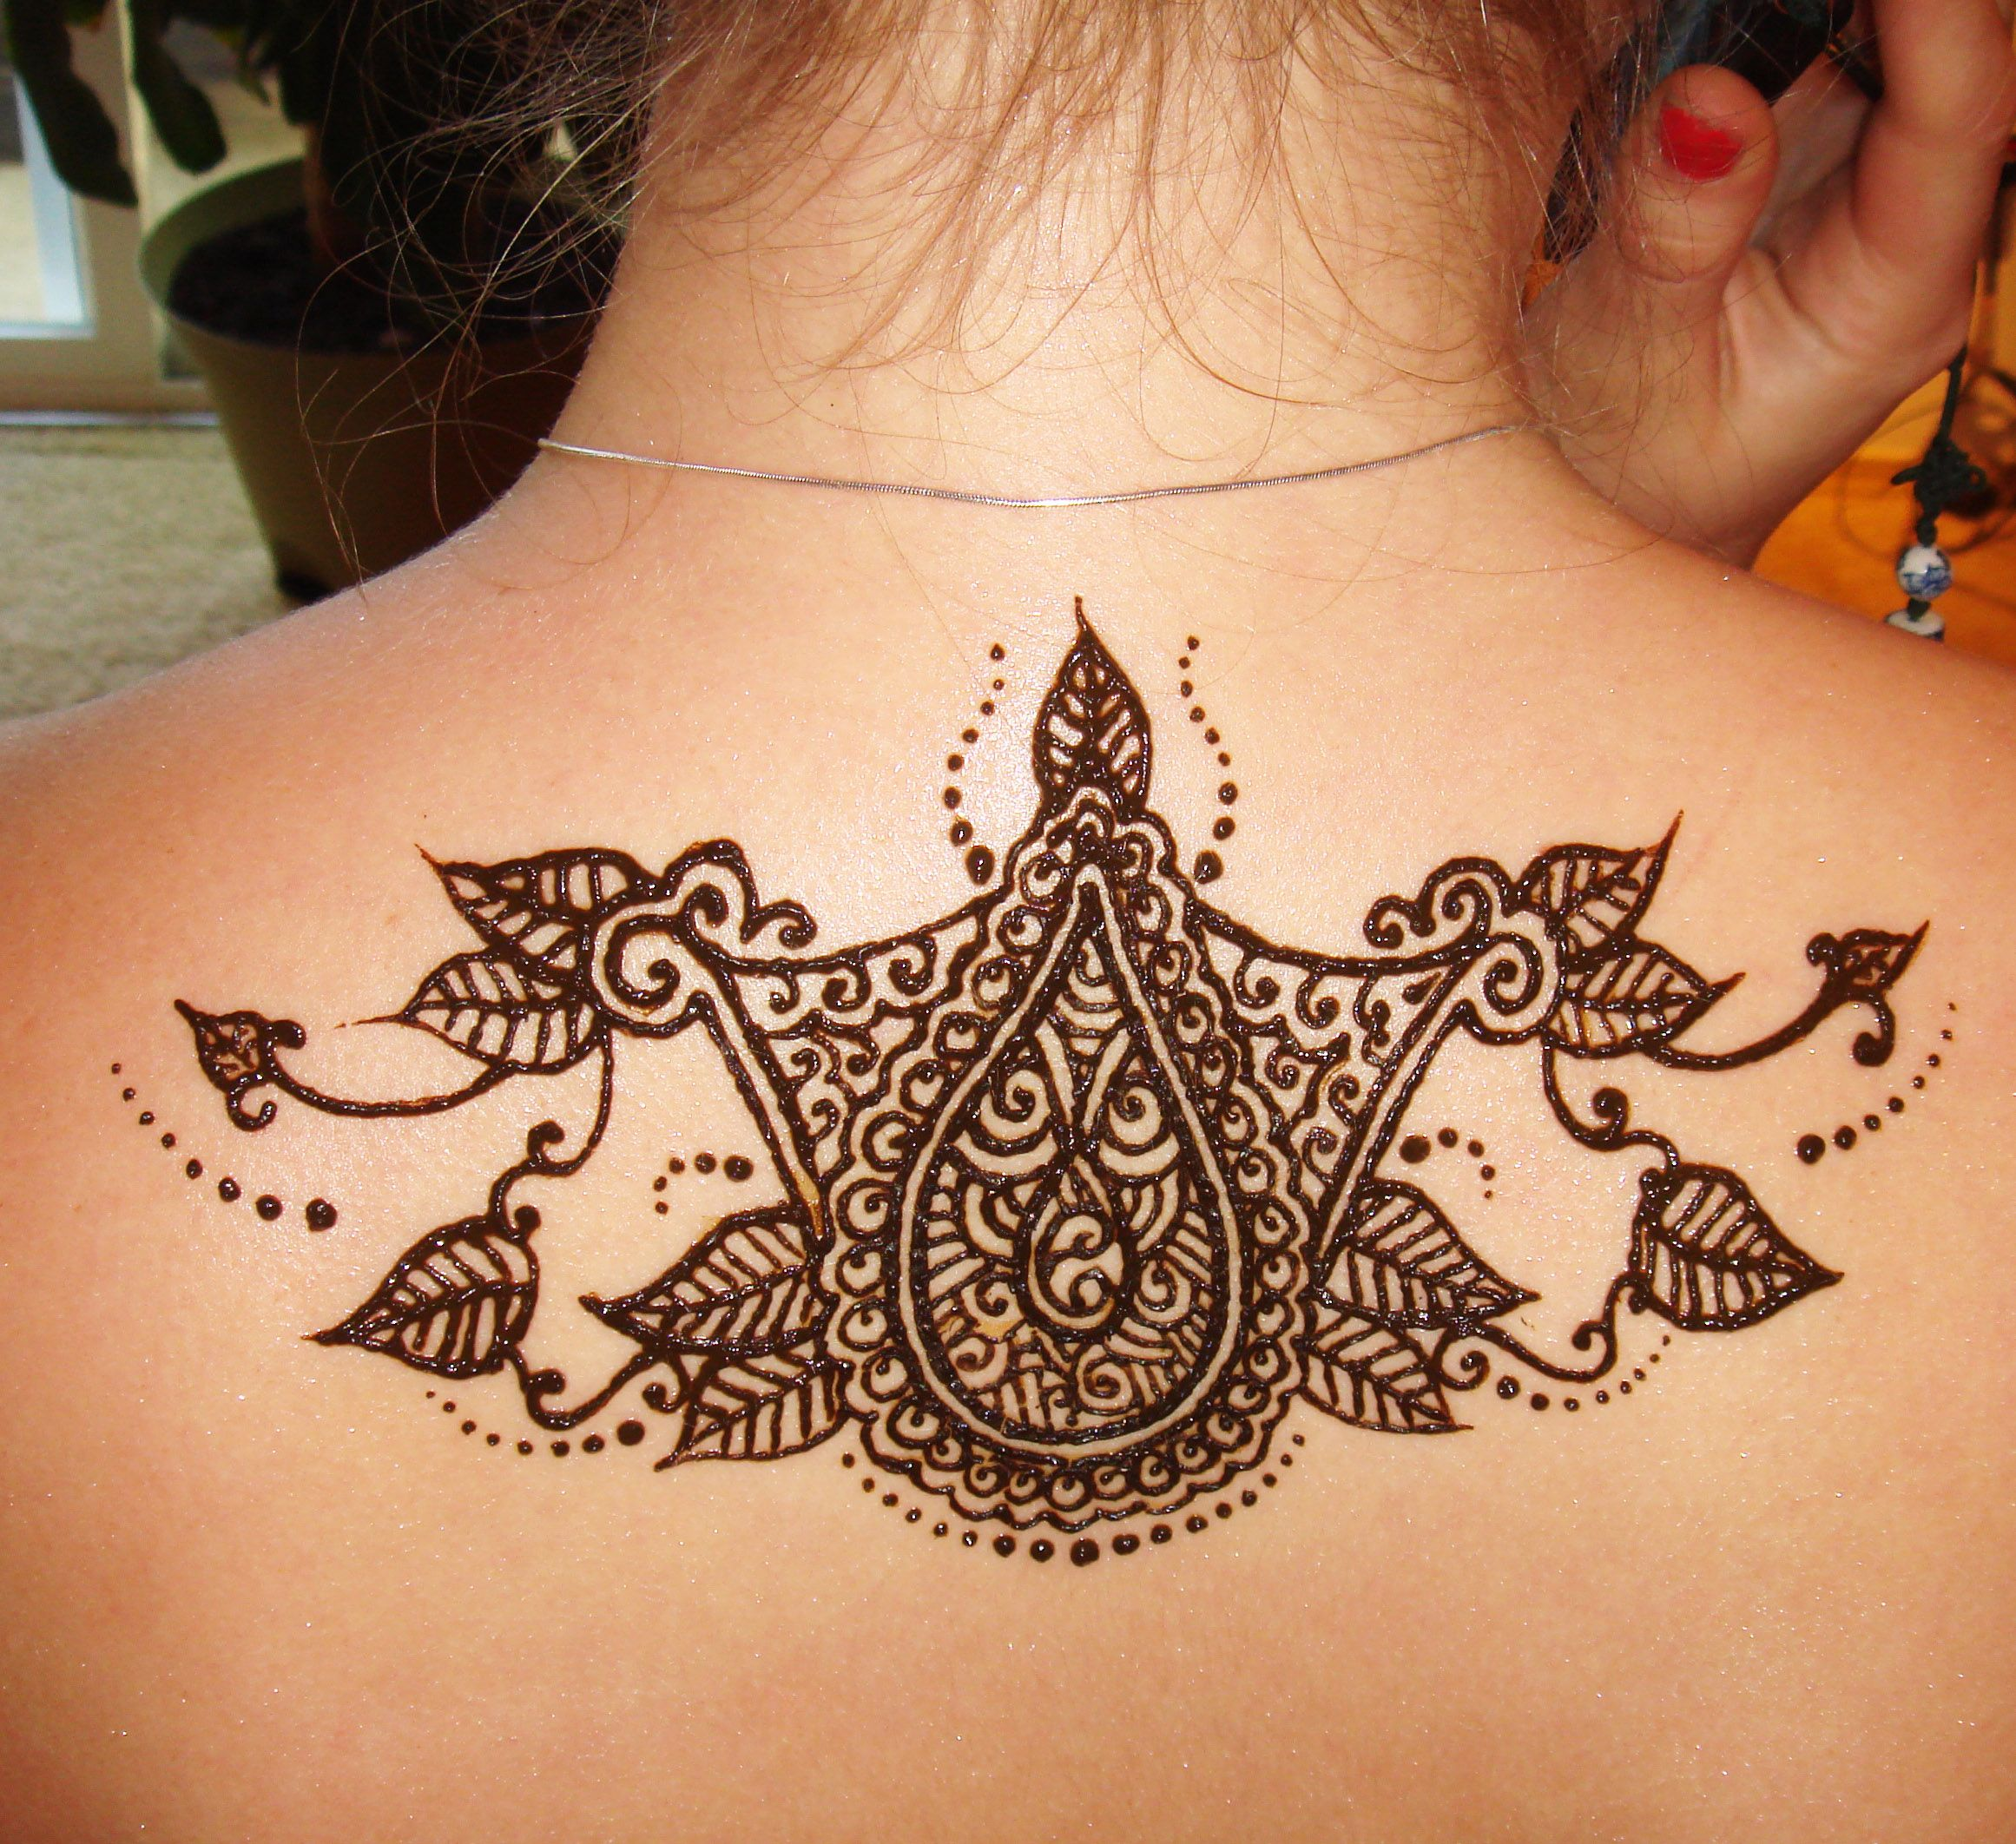 Henna Tattoo Chest: Henna Art Of The Face, Chest, Back, Etc.